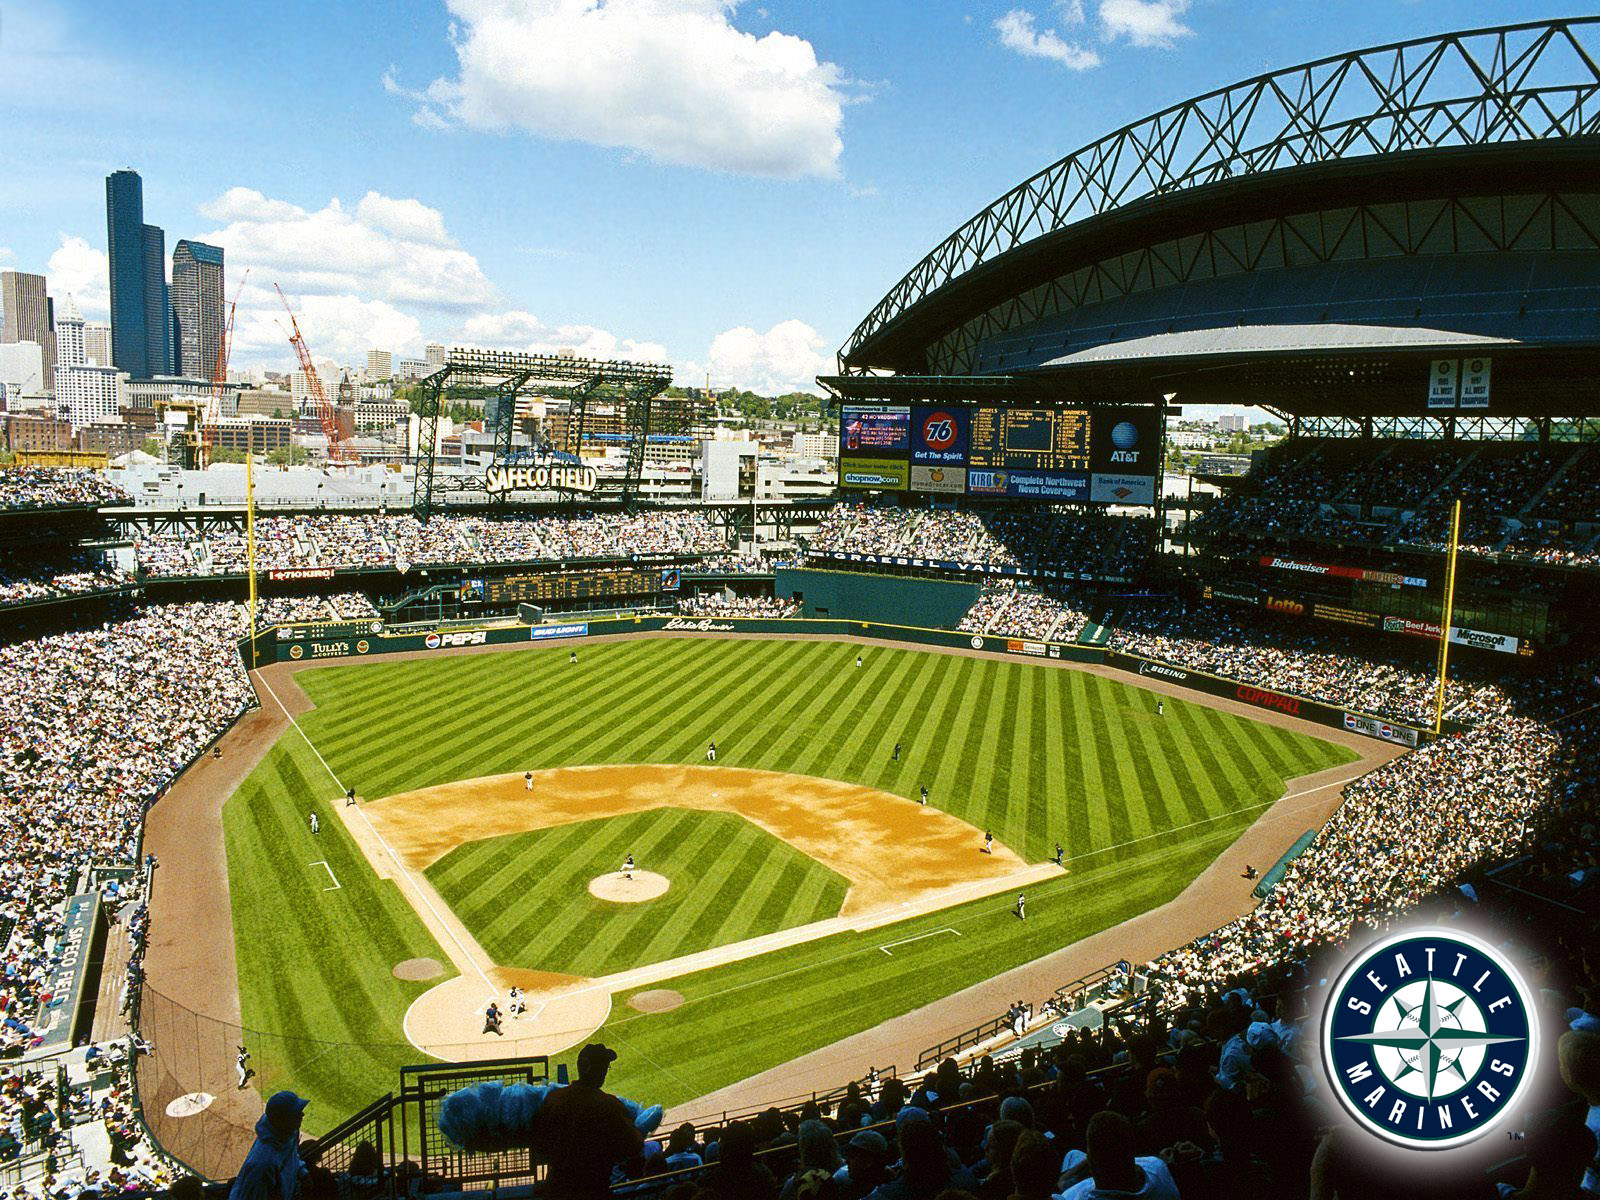 SEATTLE MARINERS mlb baseball (65)